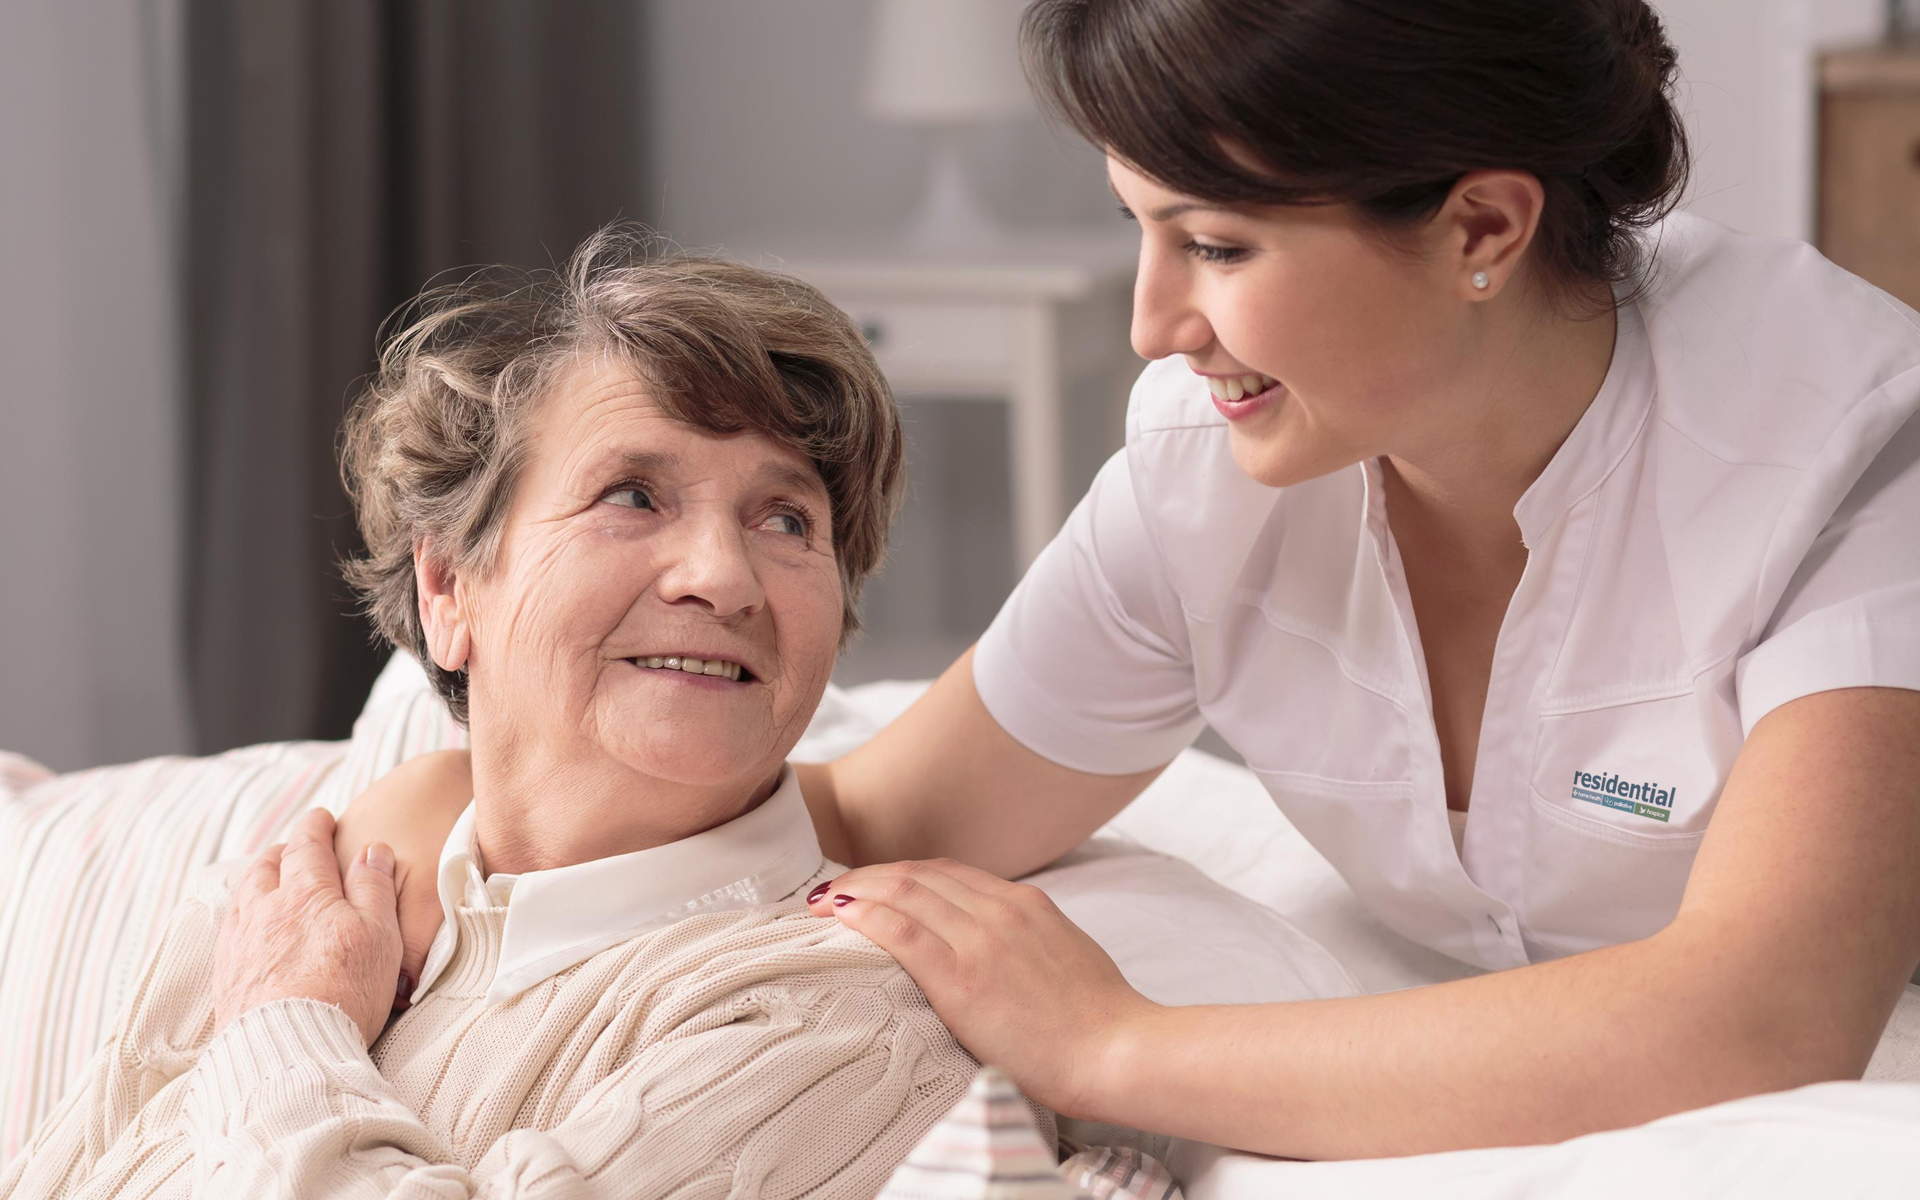 home   residential trusted by physicians to provide the